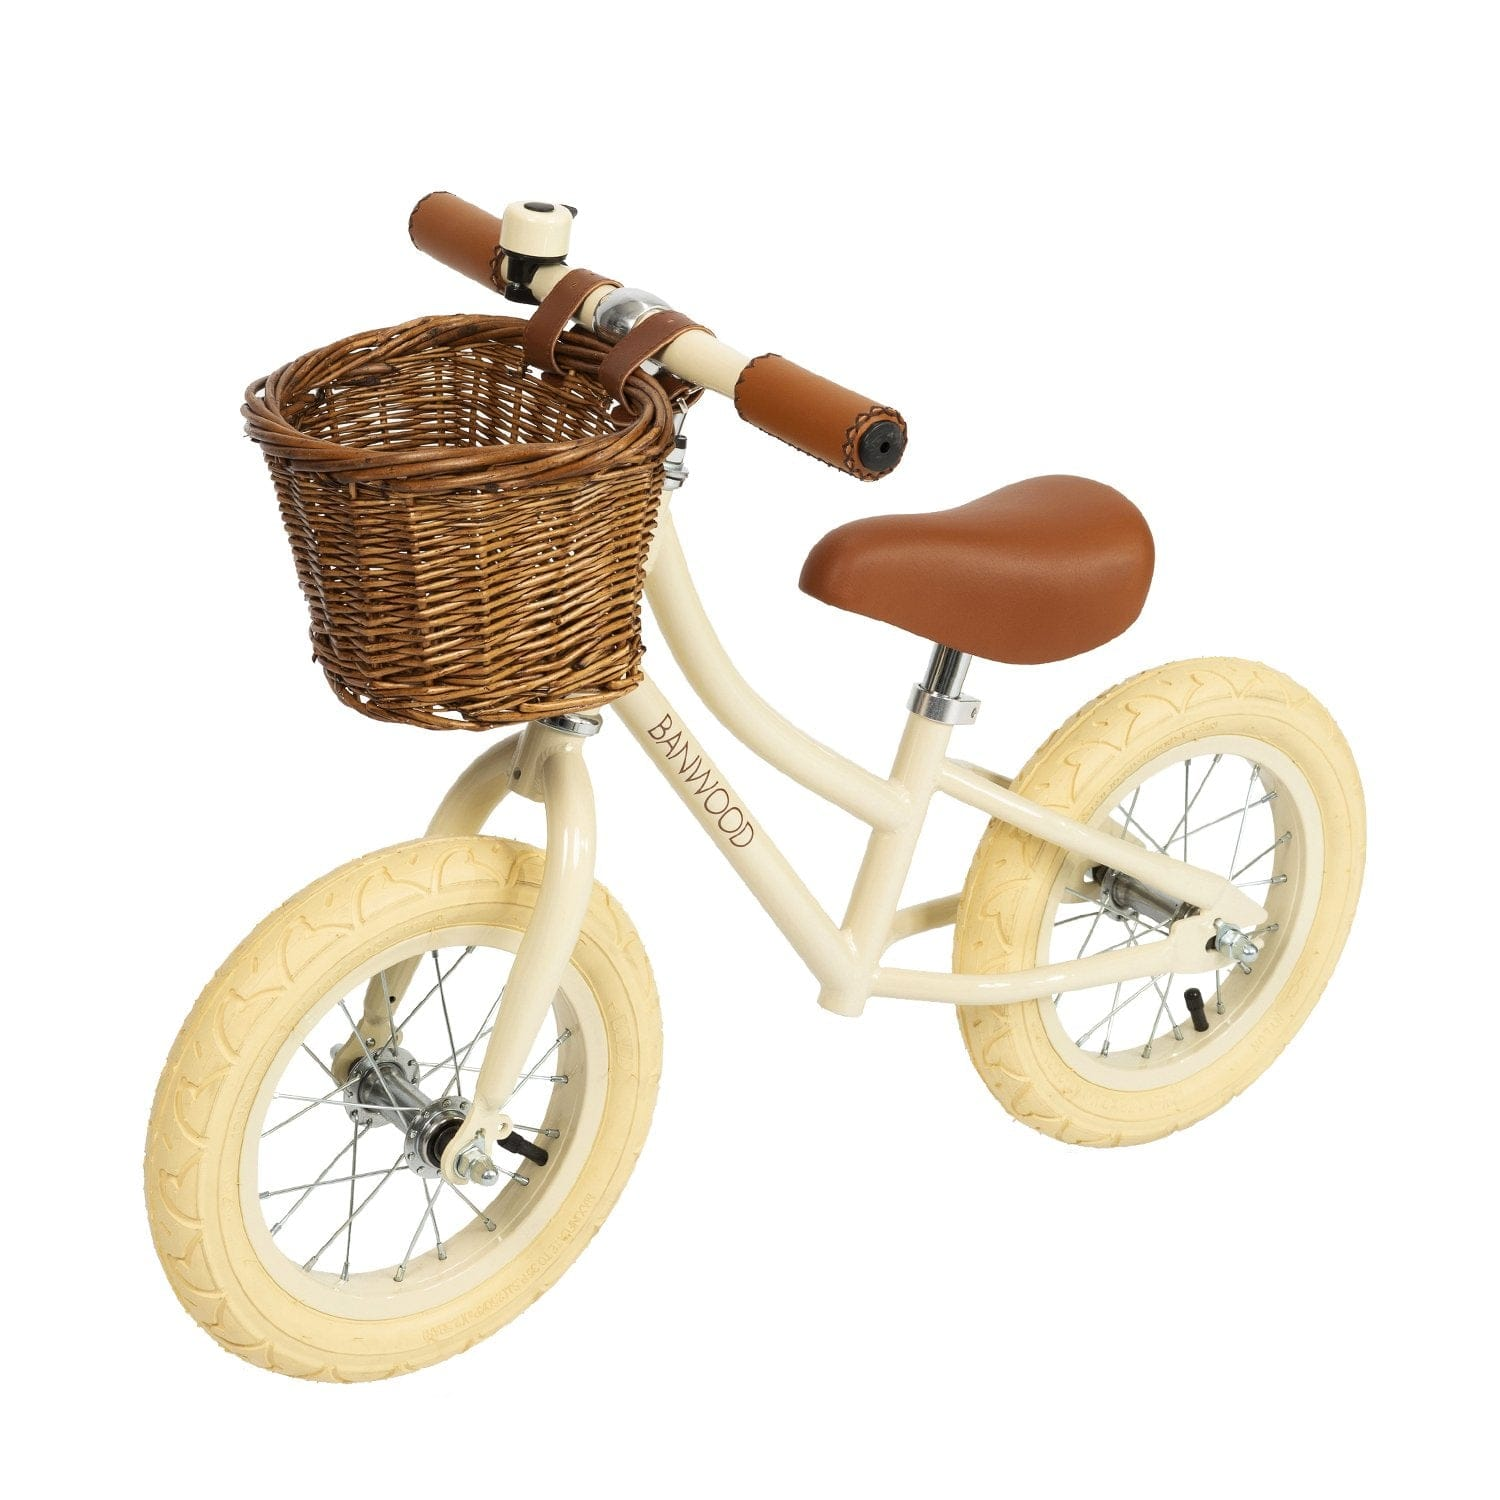 BANWOOD FIRST GO BALANCE BIKE, CREAM - Hello Little Birdie